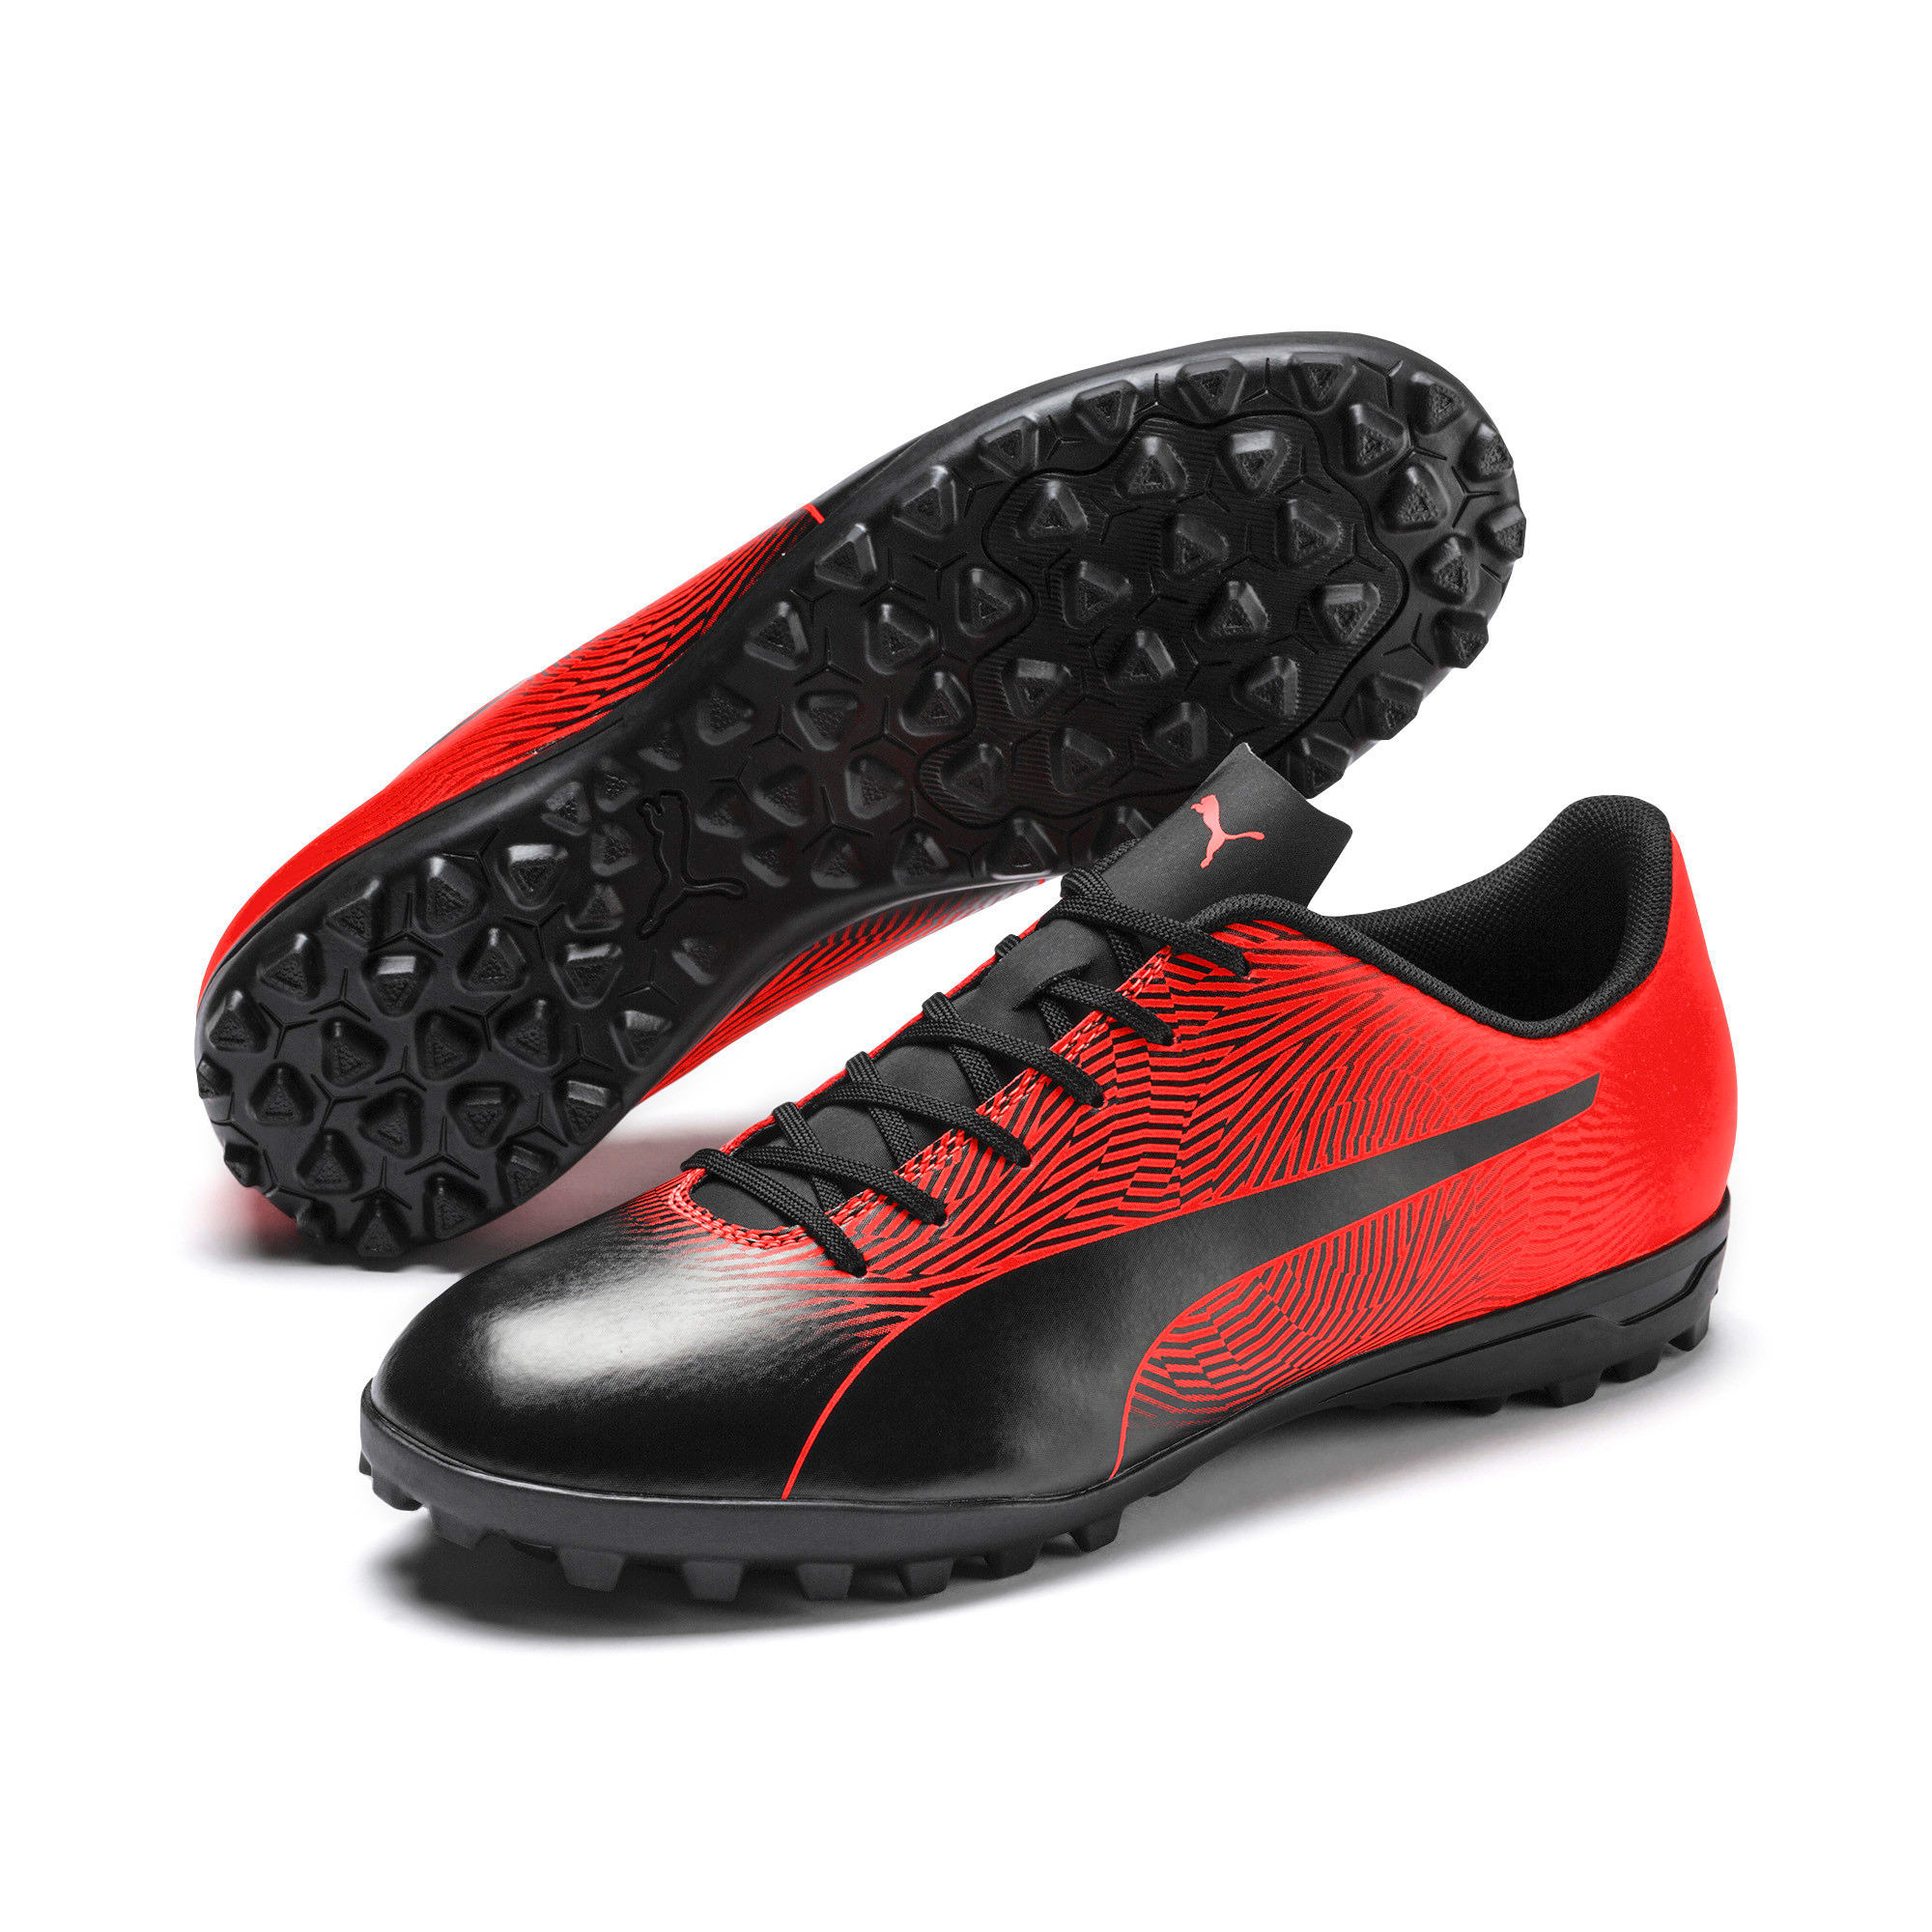 Thumbnail 2 of PUMA Spirit II TT Men's Soccer Shoes, Puma Black-Nrgy Red, medium